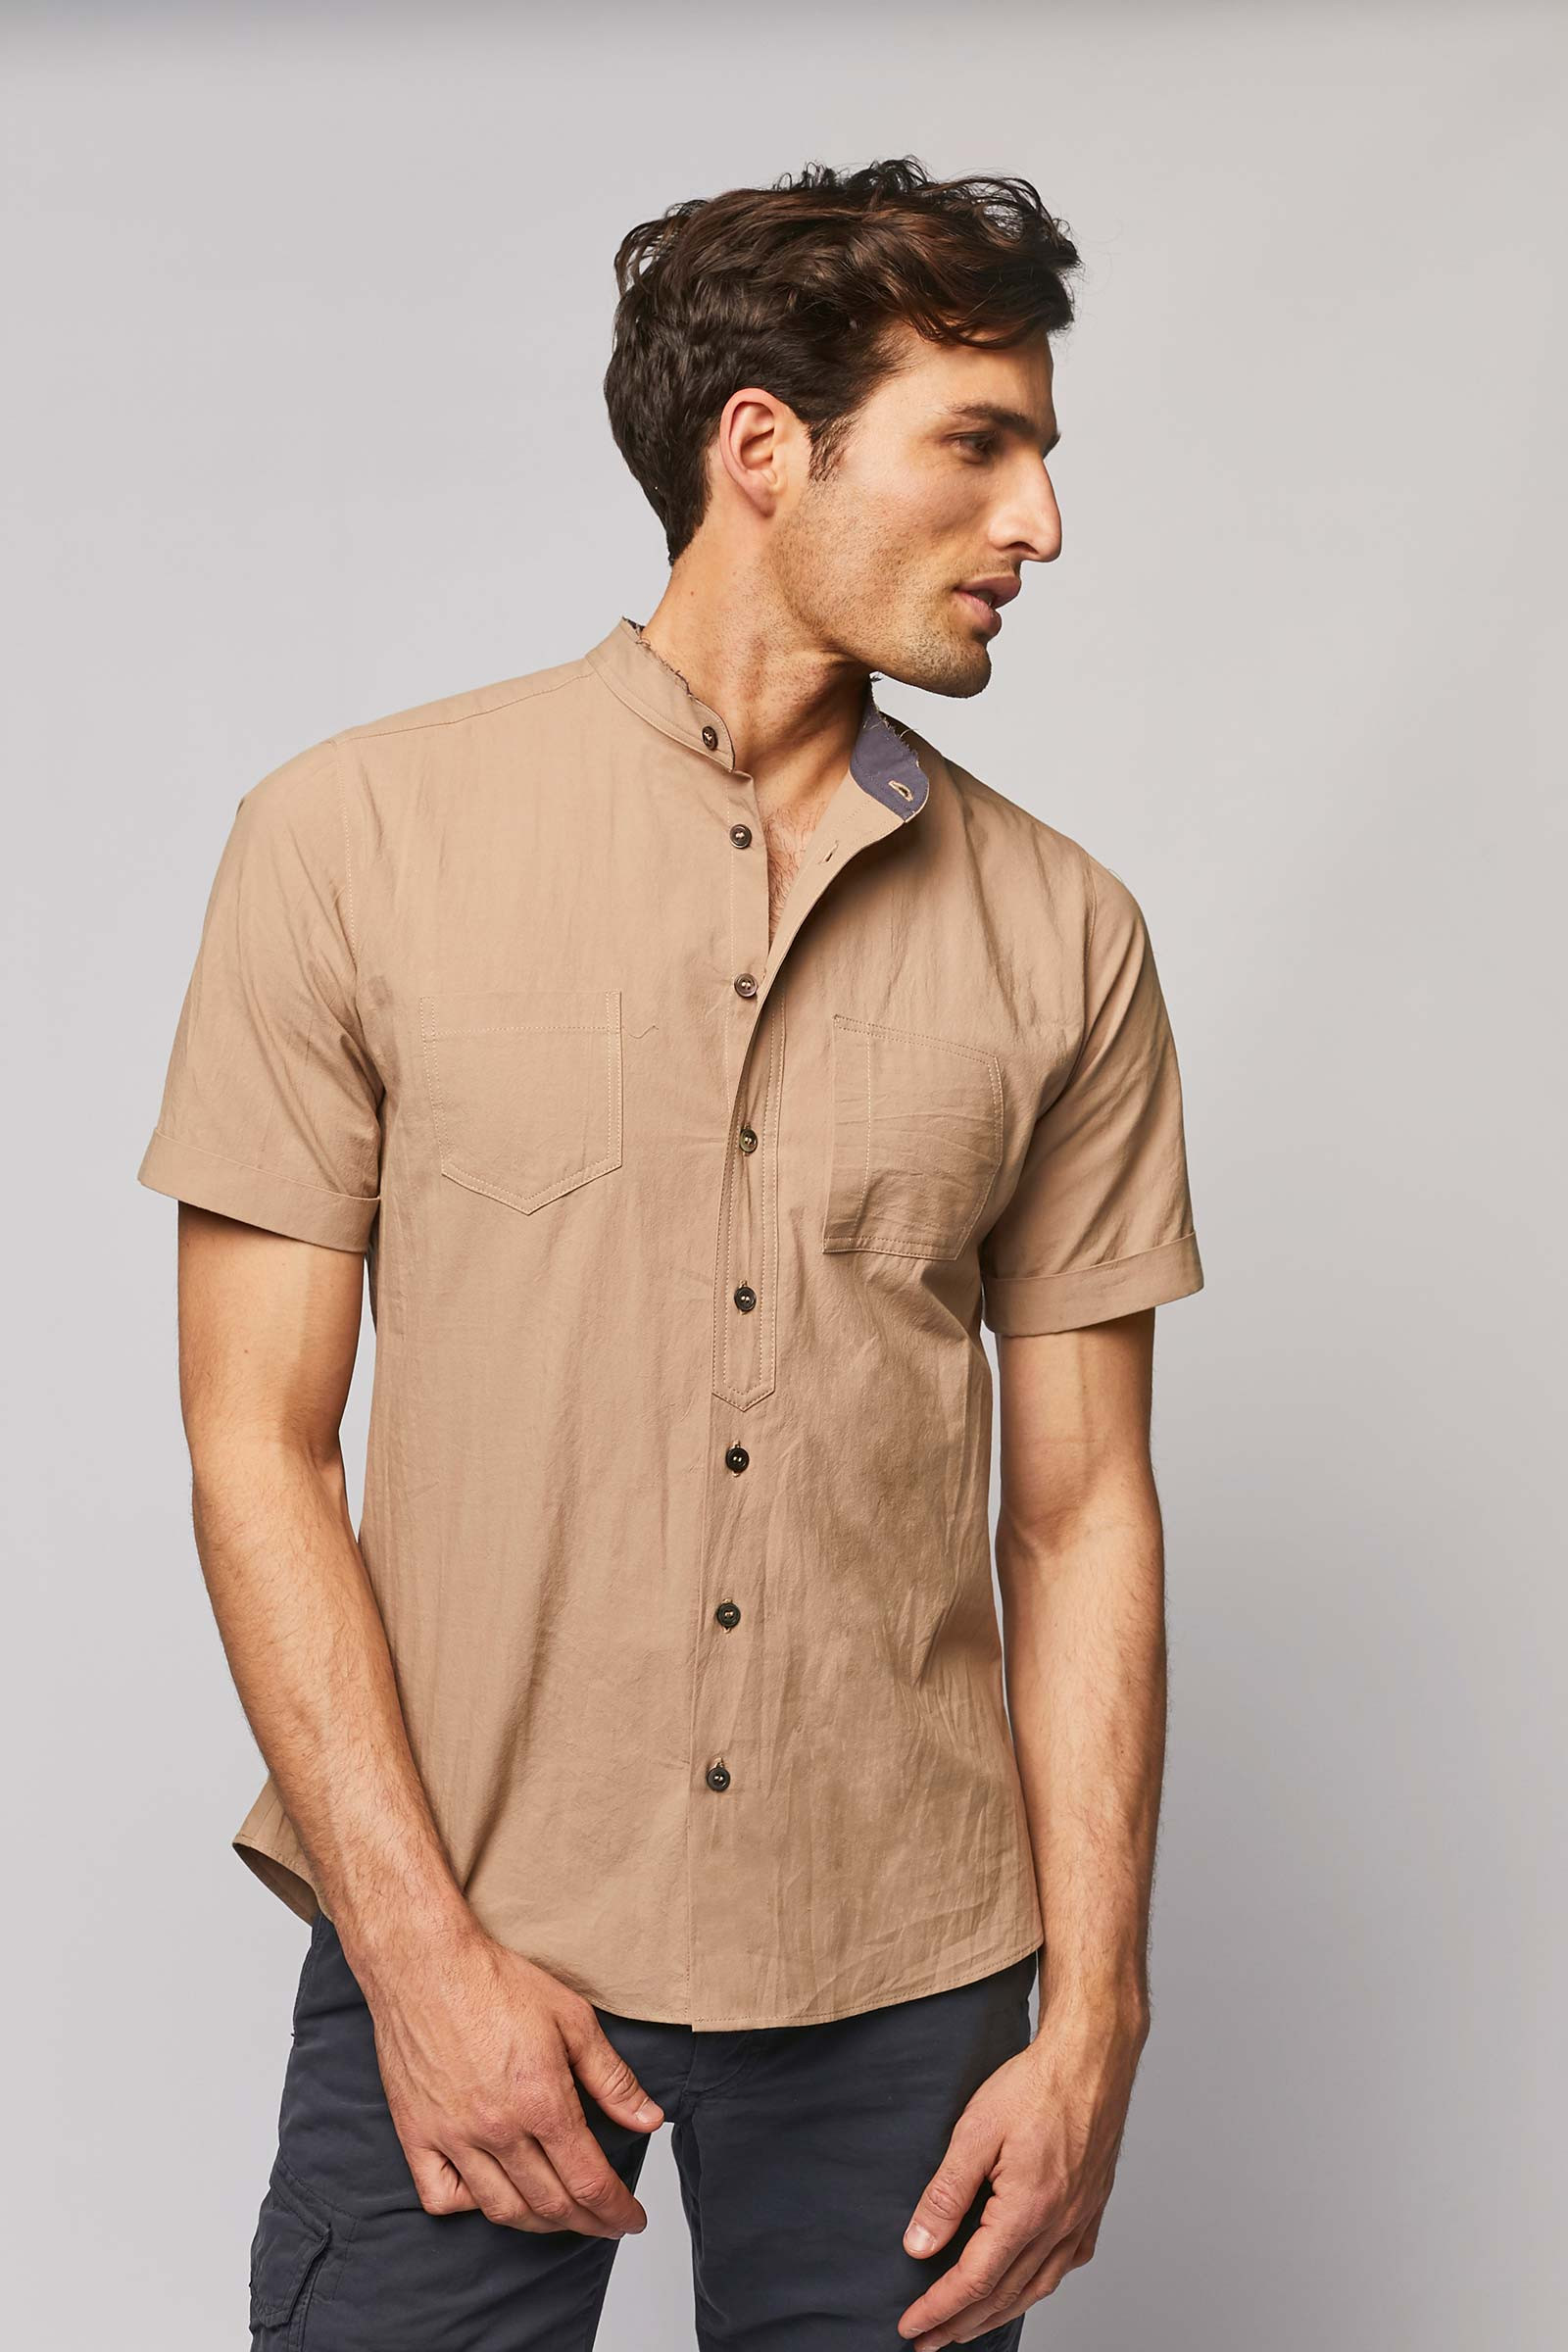 Discover This Beige Shirt cover